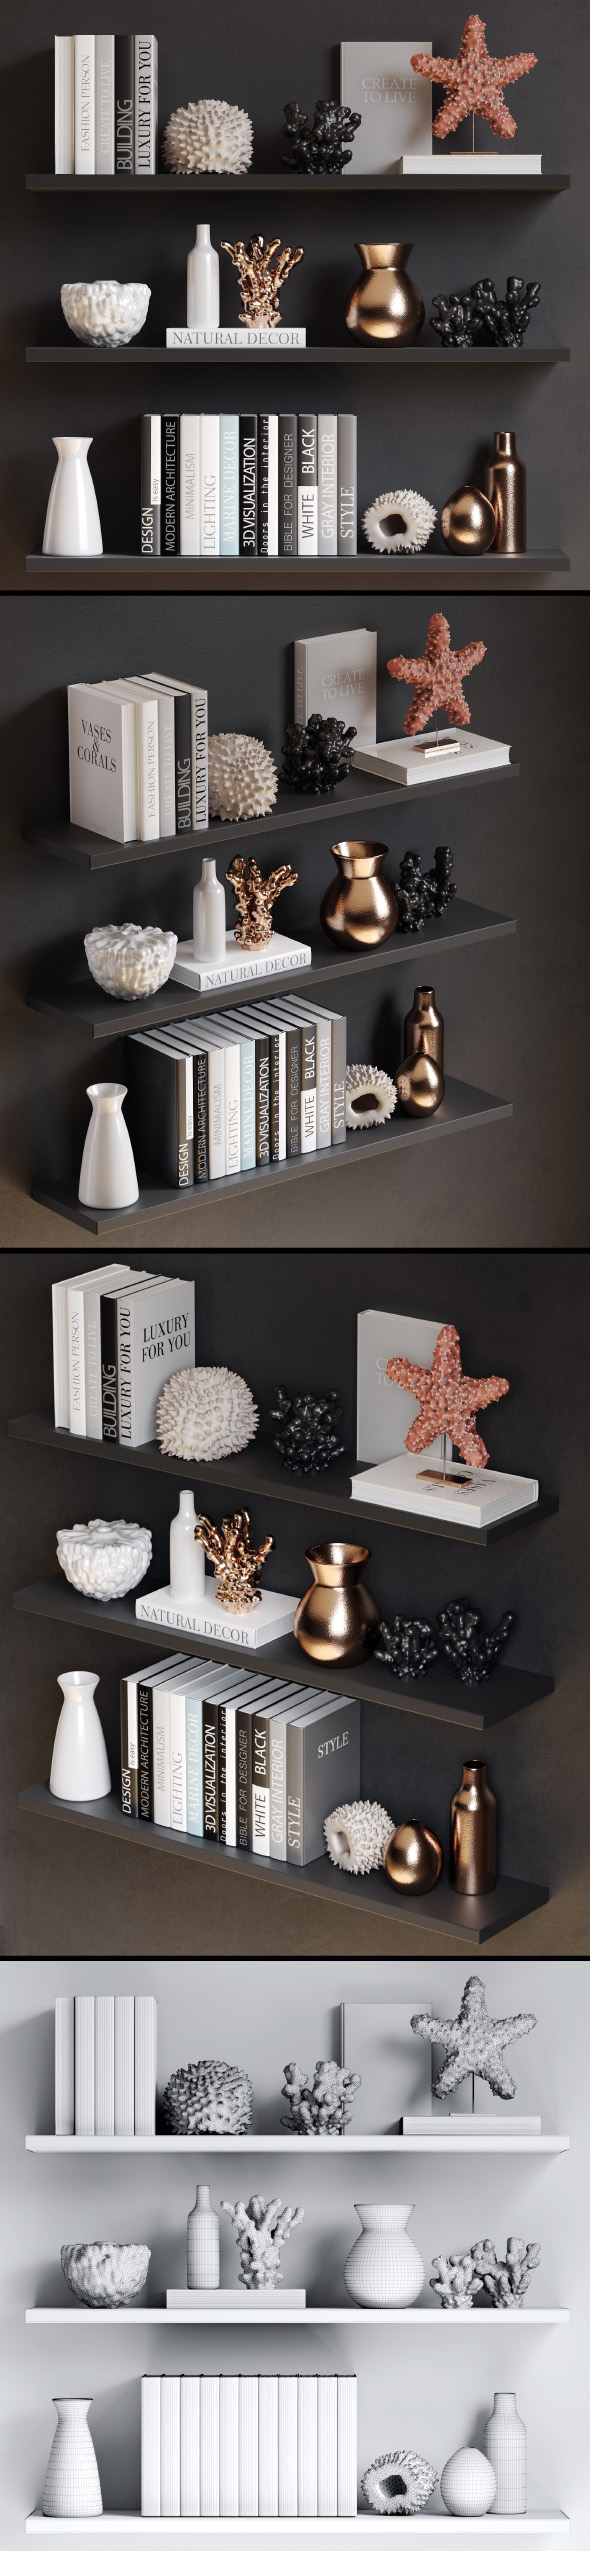 3DOcean Sea decor with corals vases and books 21032943